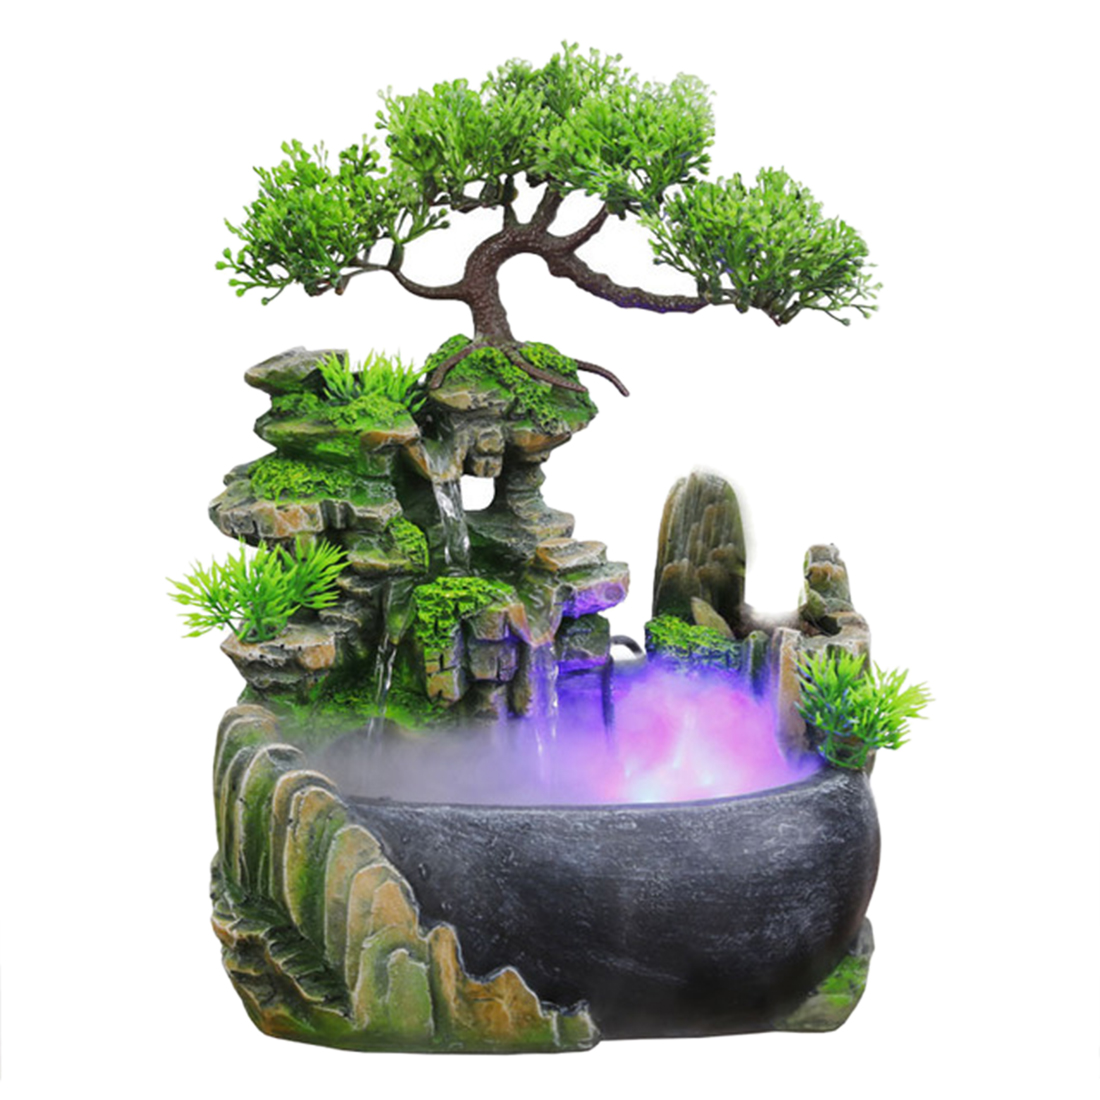 VICTMAX Desktop Humidifier Waterfall Rockery Fountain Flowing Water Mini Fish Pond With Fog For Home Garden Decor - US Plug